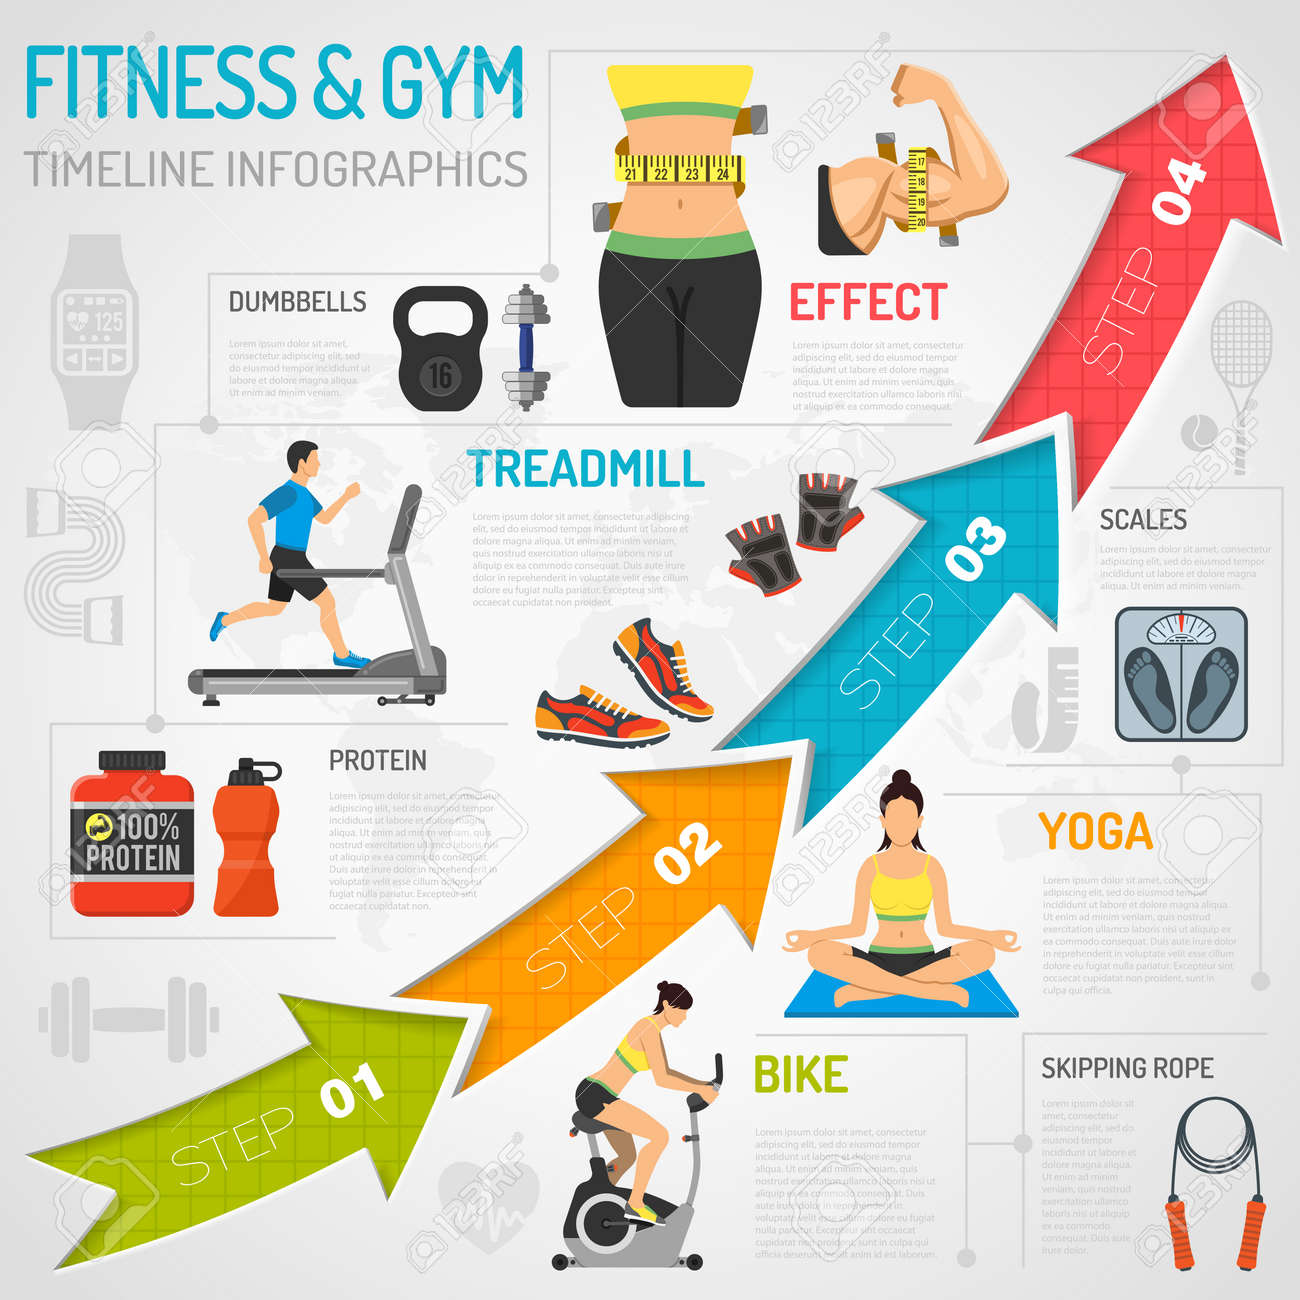 Fitness, Gym, Cardio, Yoga, Healthy Lifestyle Timeline Infographics for Mobile Applications, Web Site, Advertising with Exercise Bike, Dambbells, Treadmill and Arrows. - 55680057